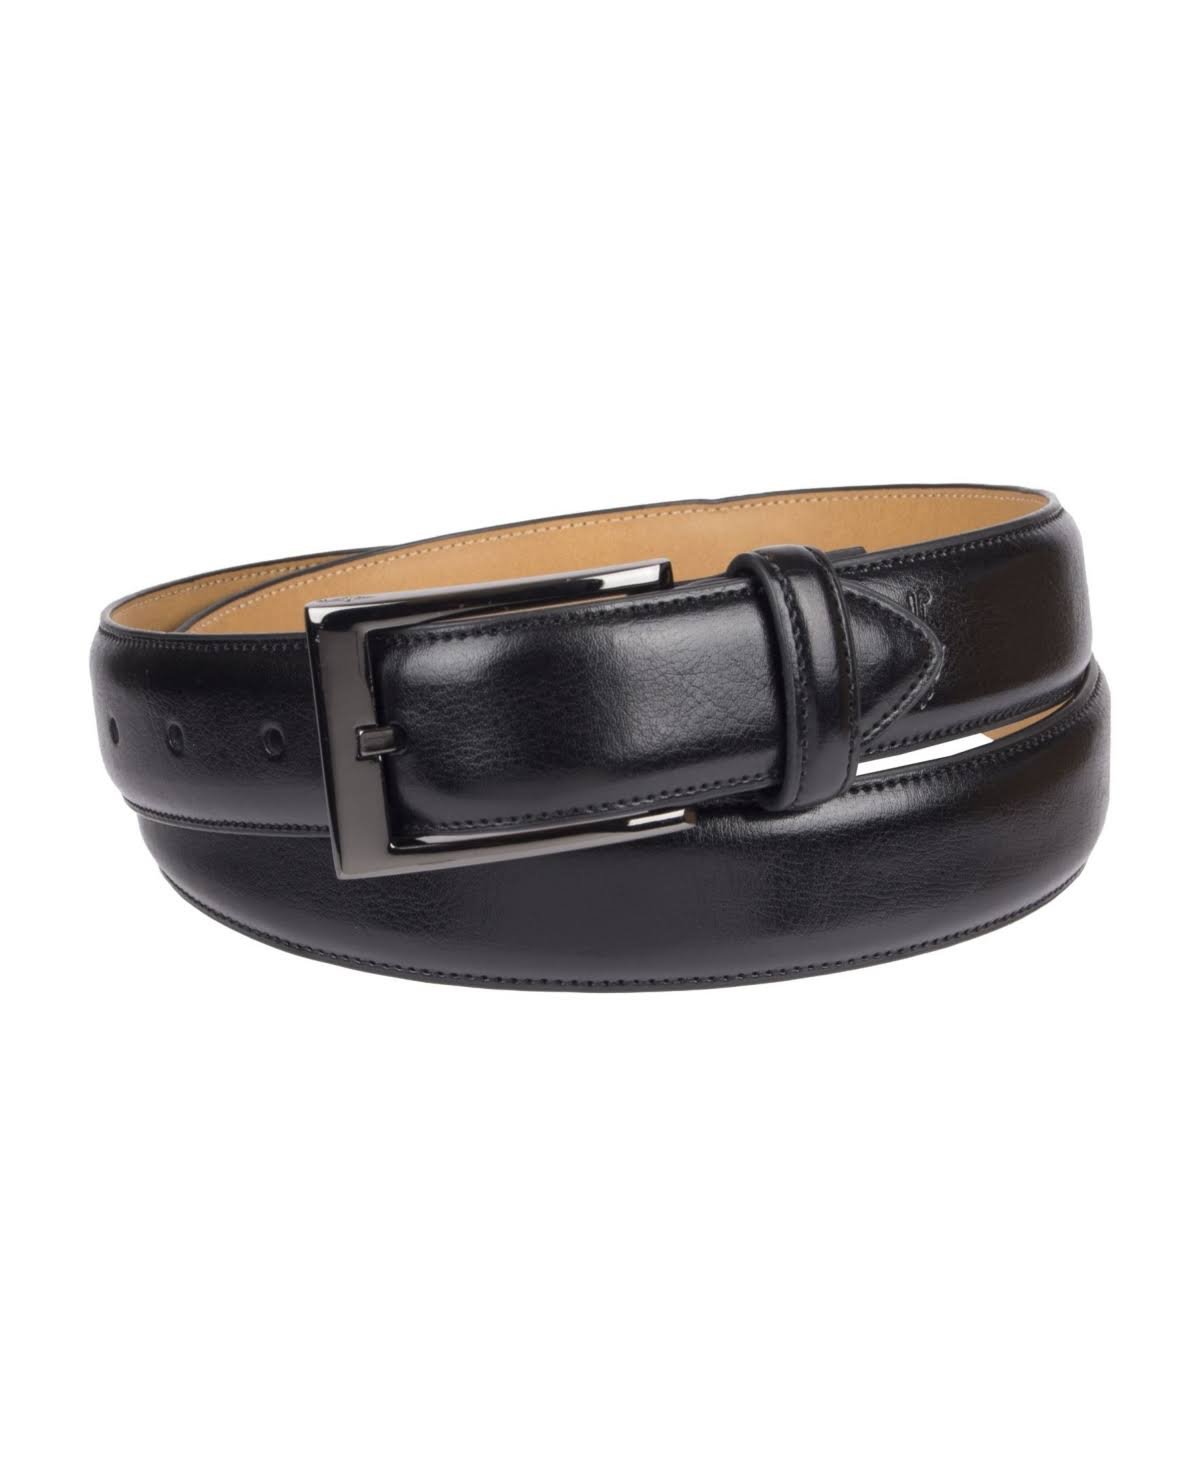 Dockers 32mm Leather Belt Black